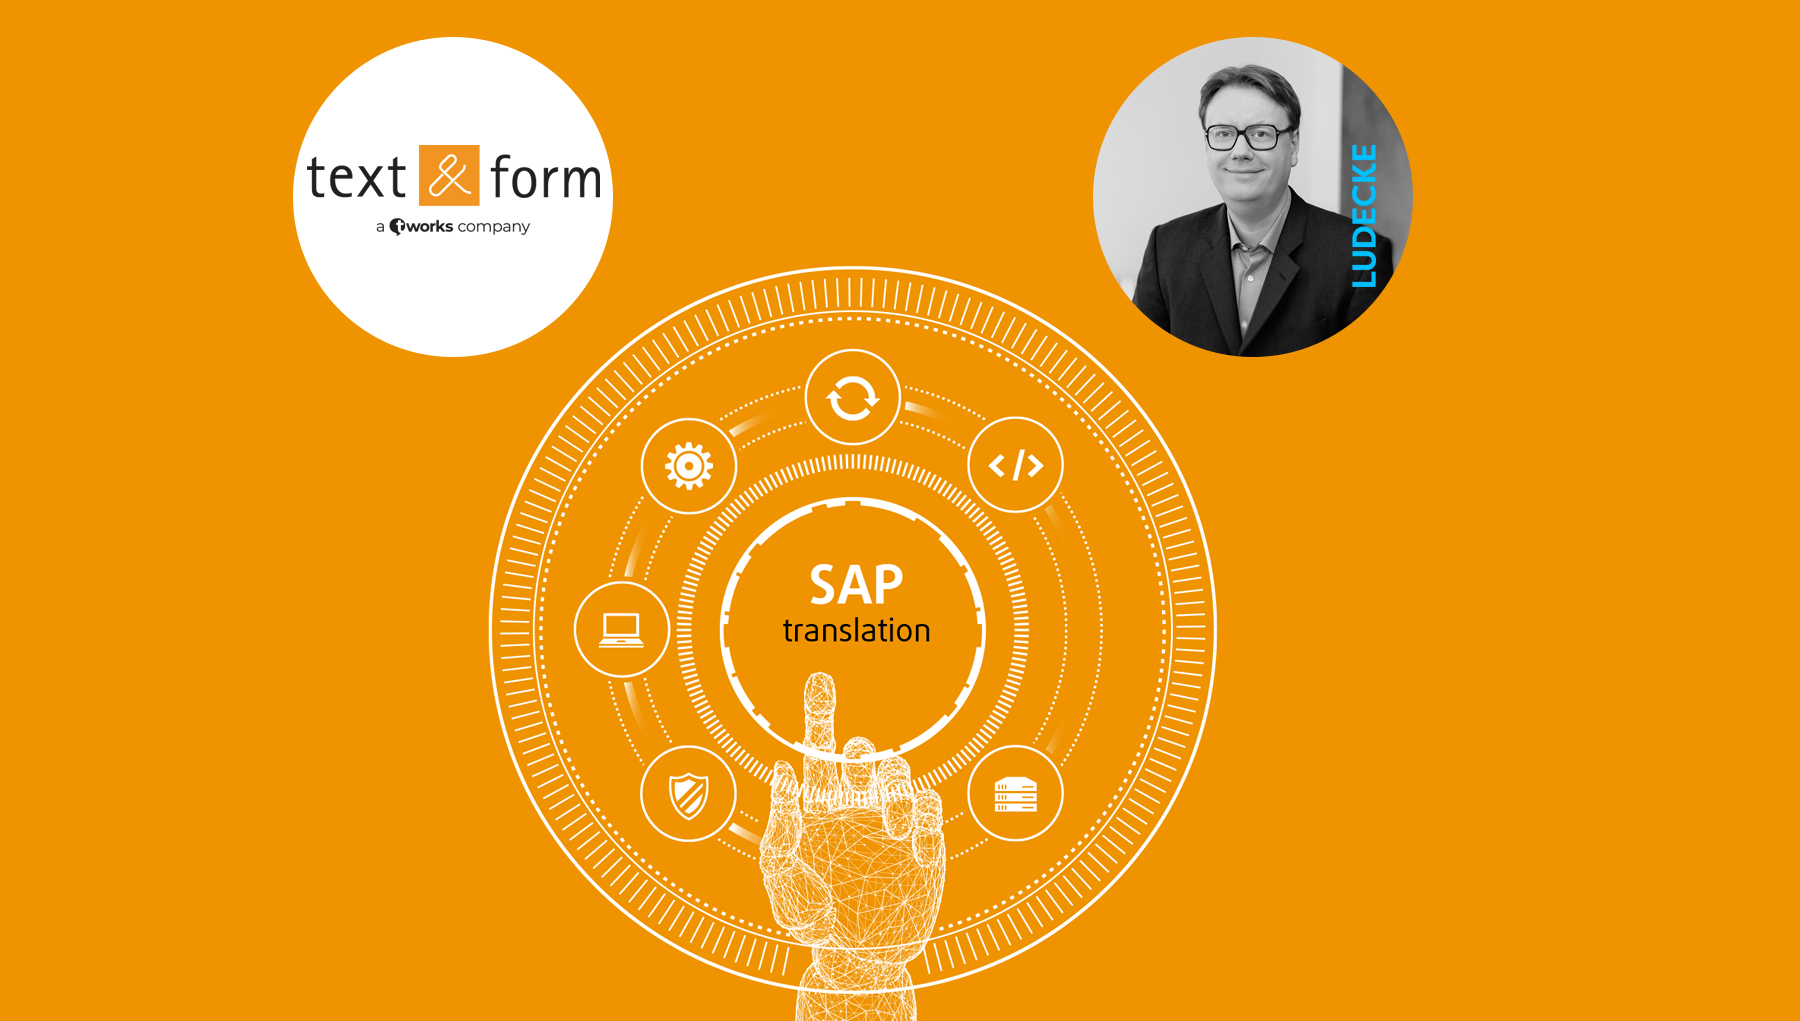 Partnership with LUDECKE, SAP translation at text&form